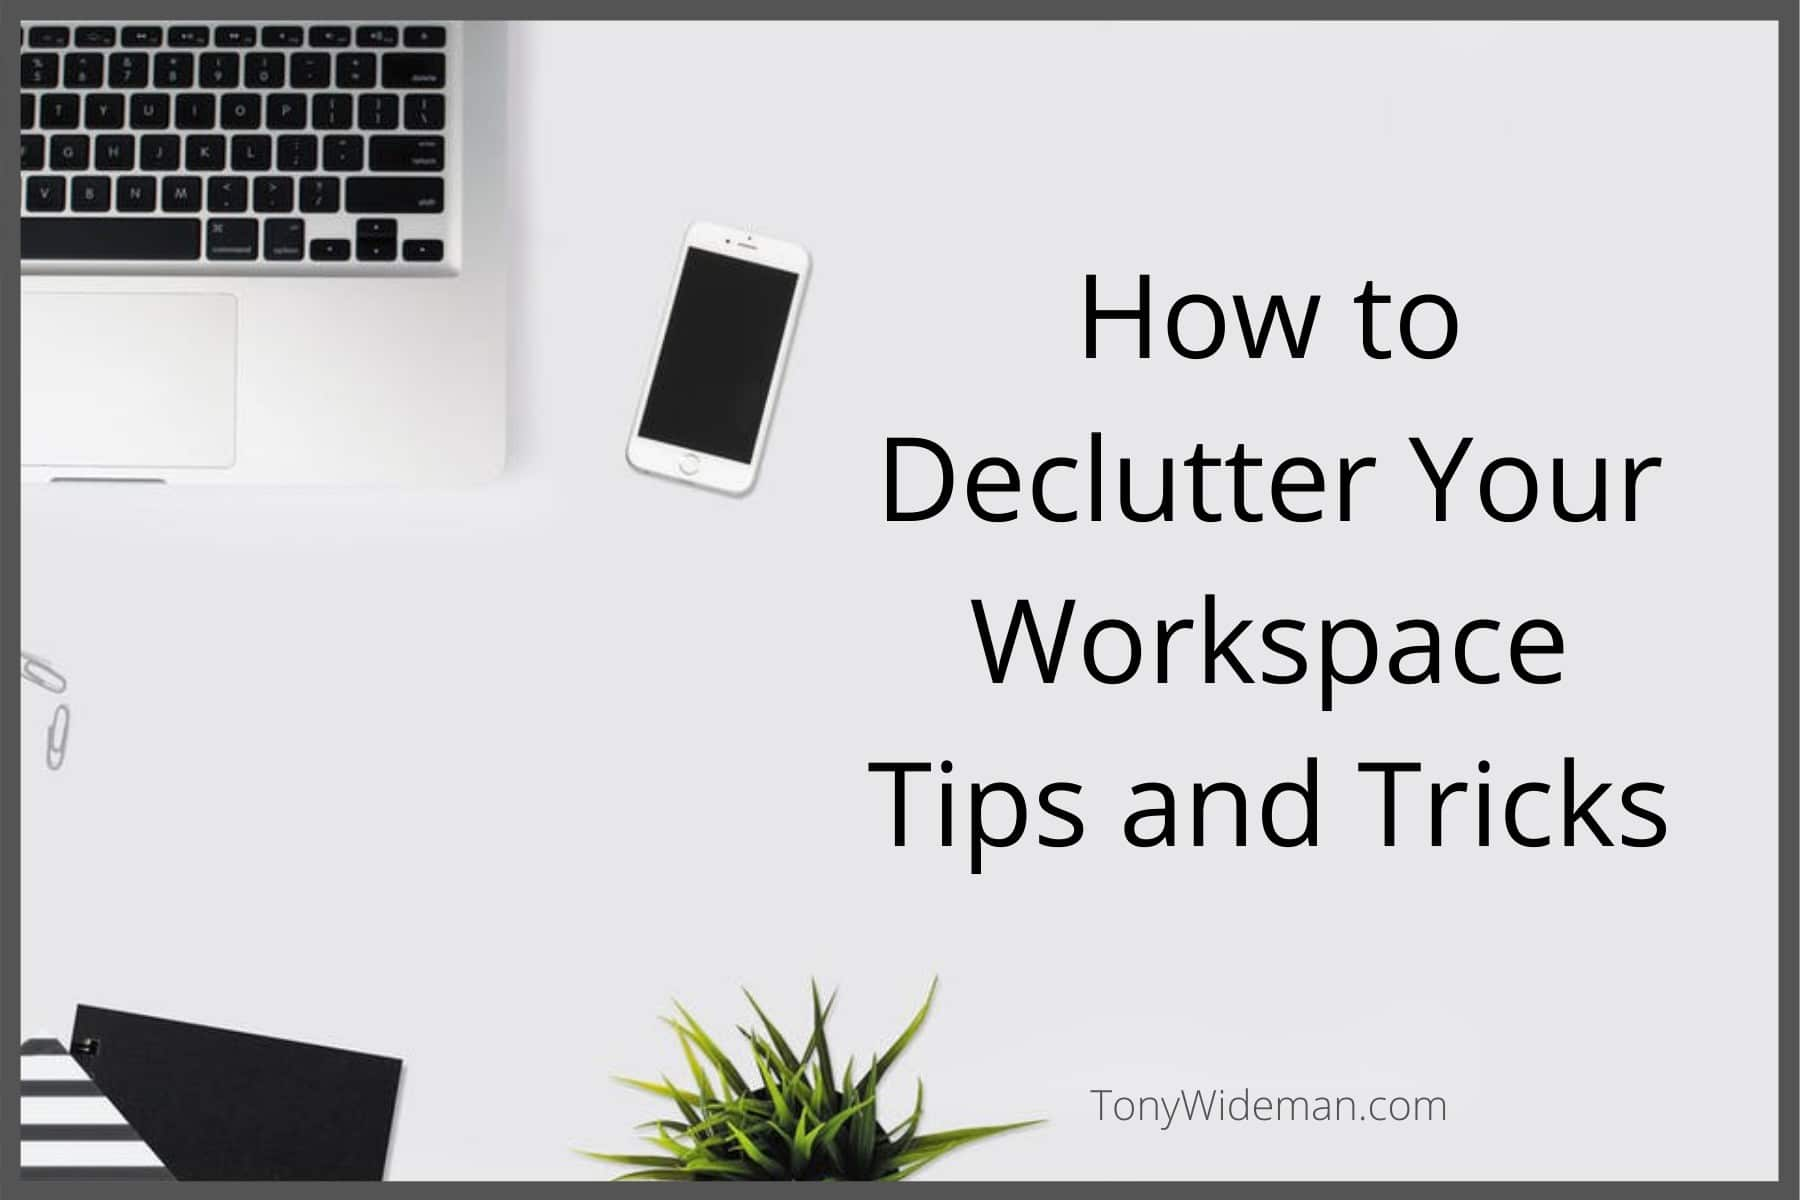 Minimalism: How to Declutter Your Workspace Tips and Tricks